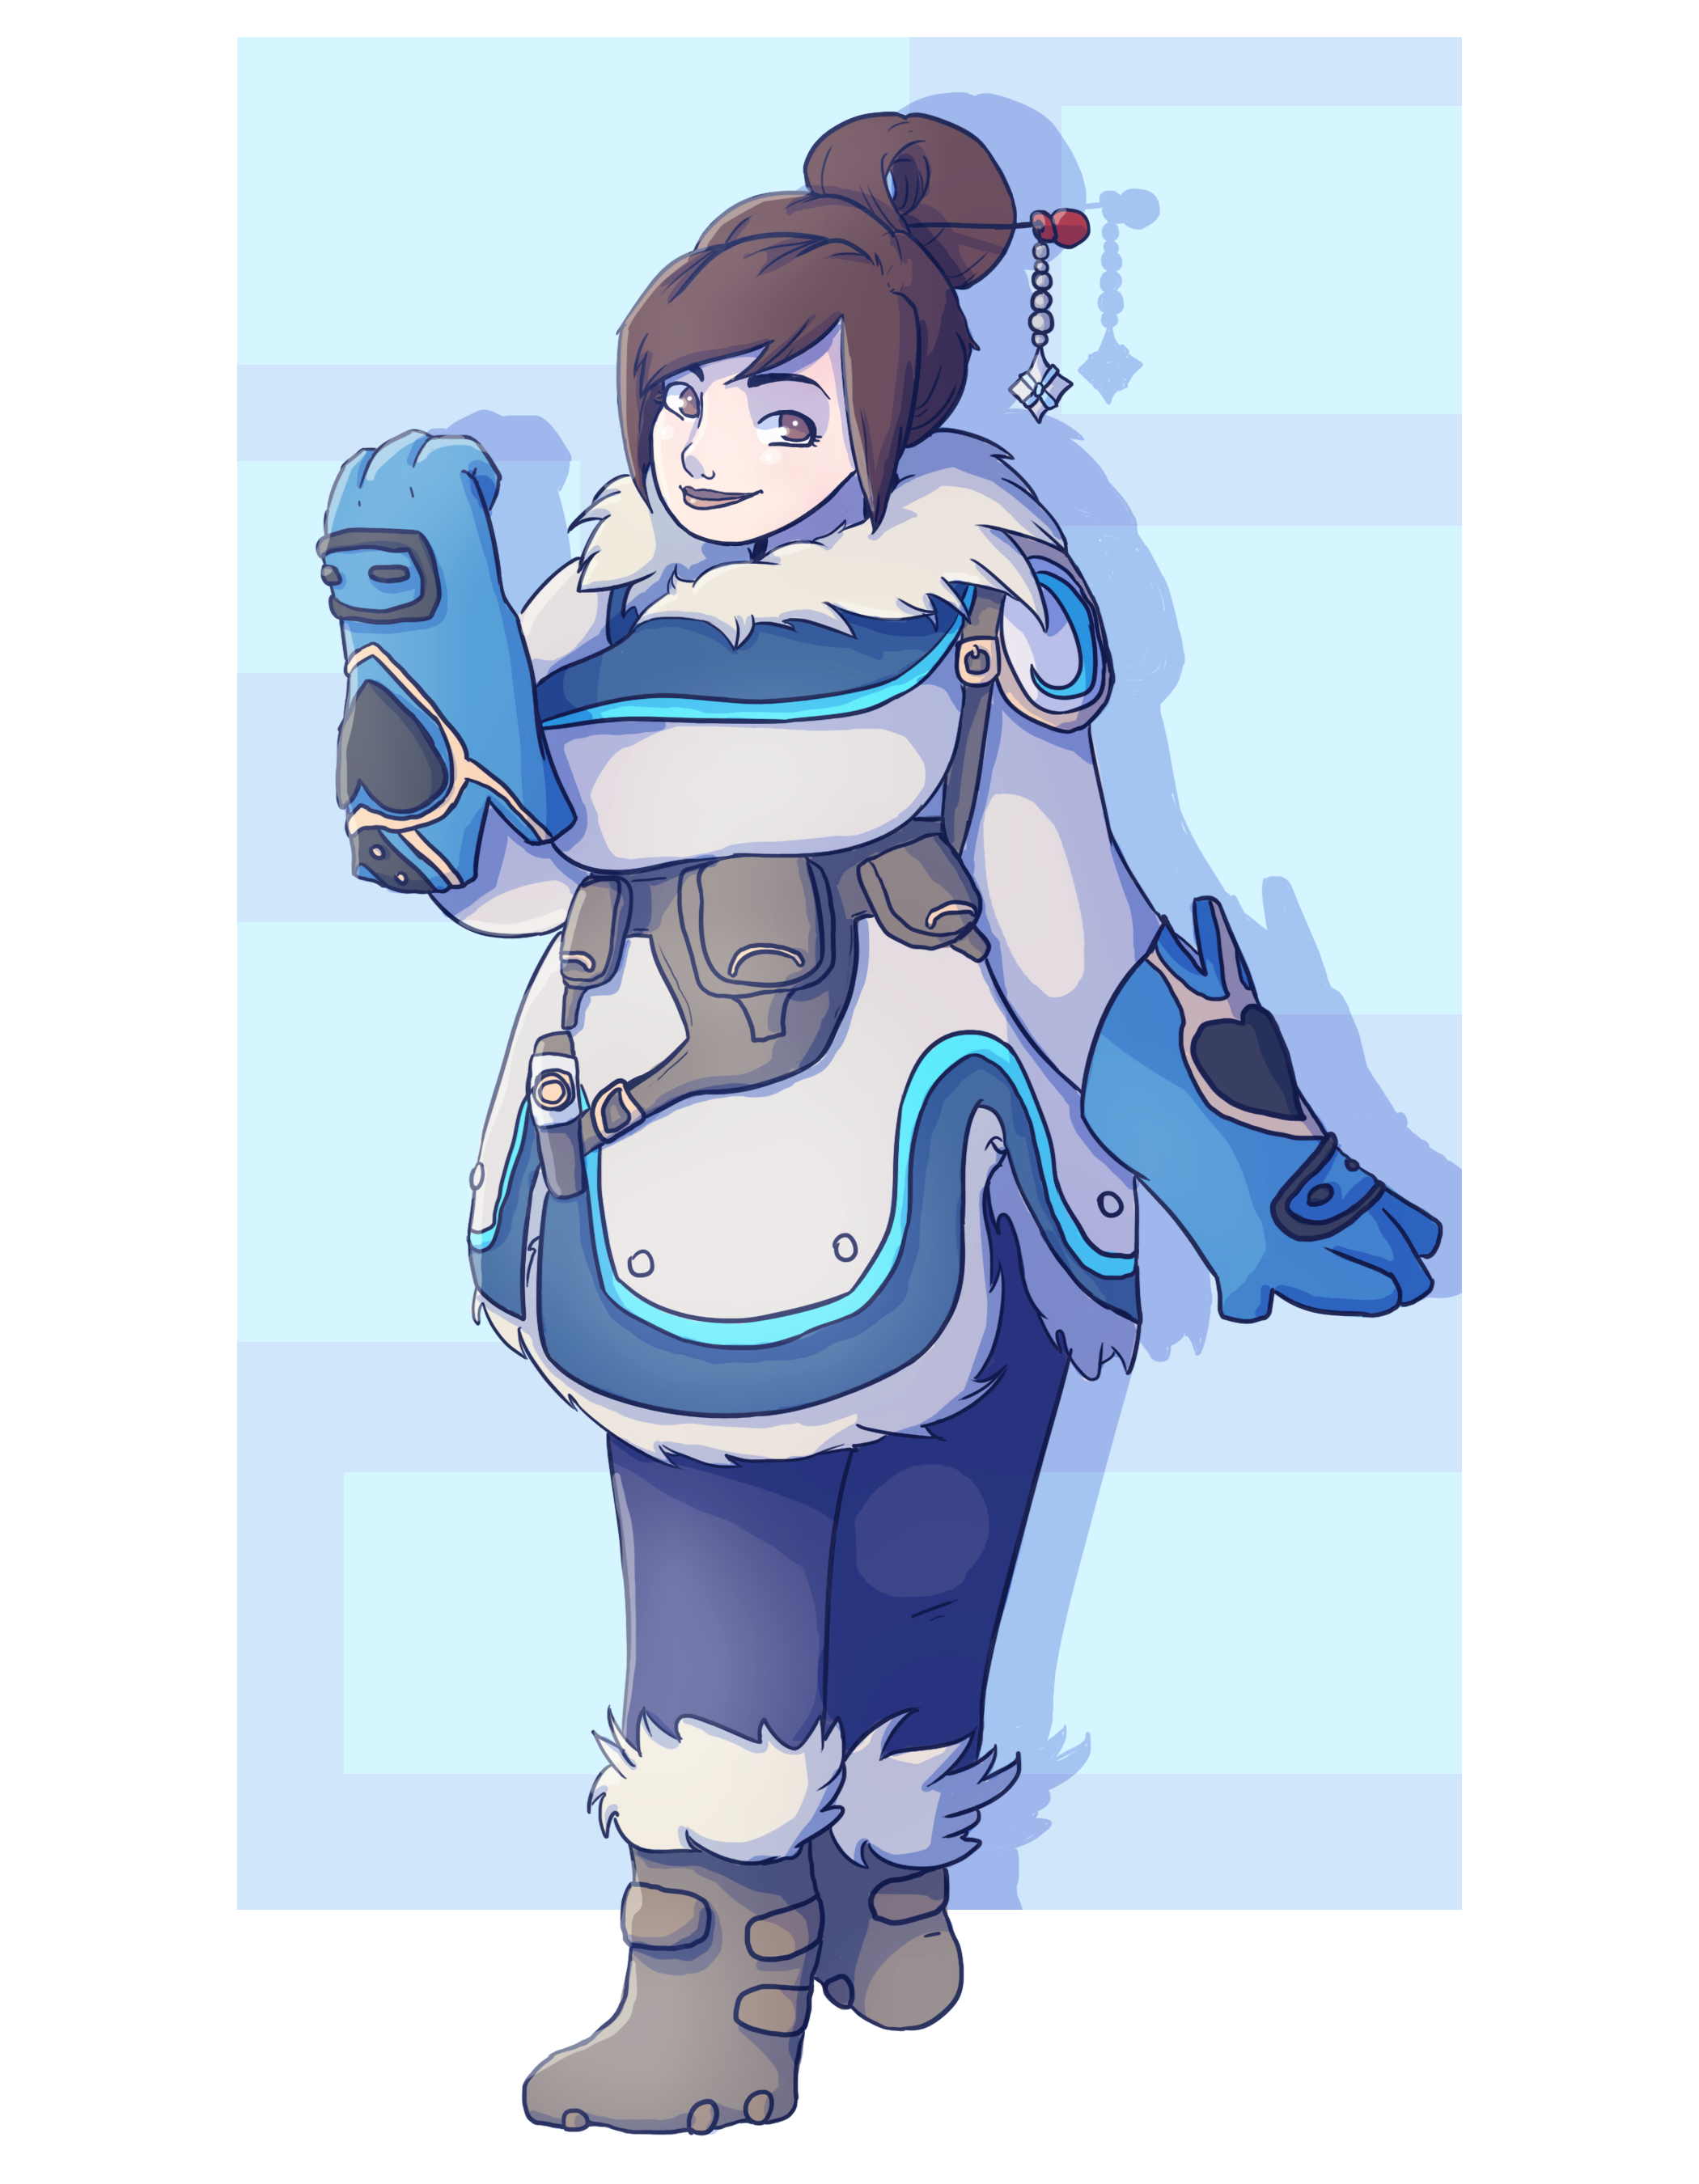 Overwatch Mei - Request